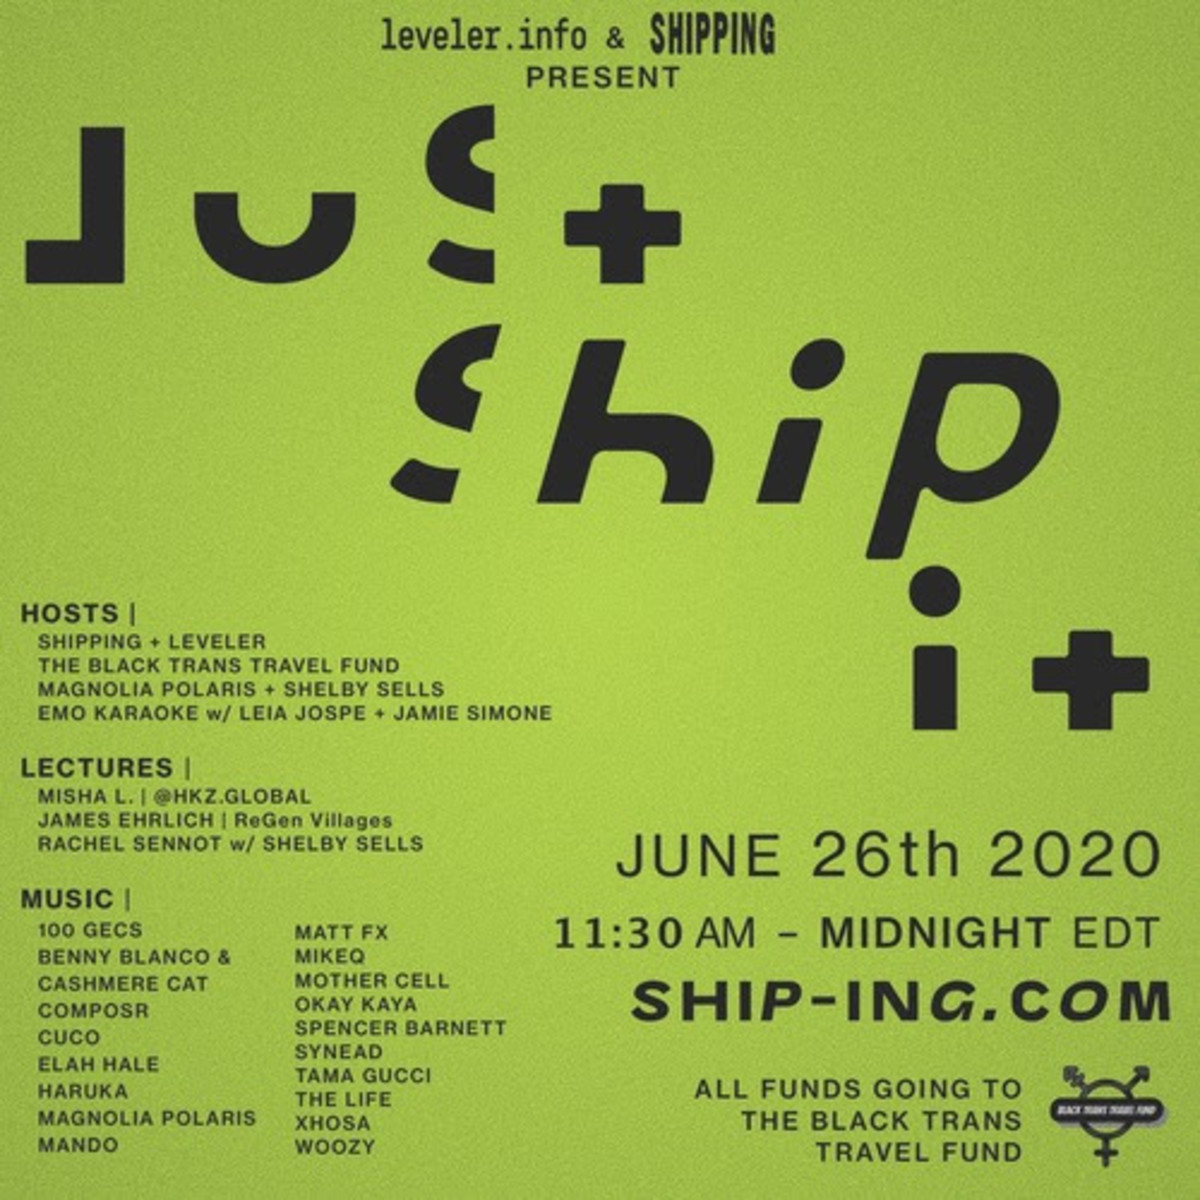 Just Ship It Lineup Poster